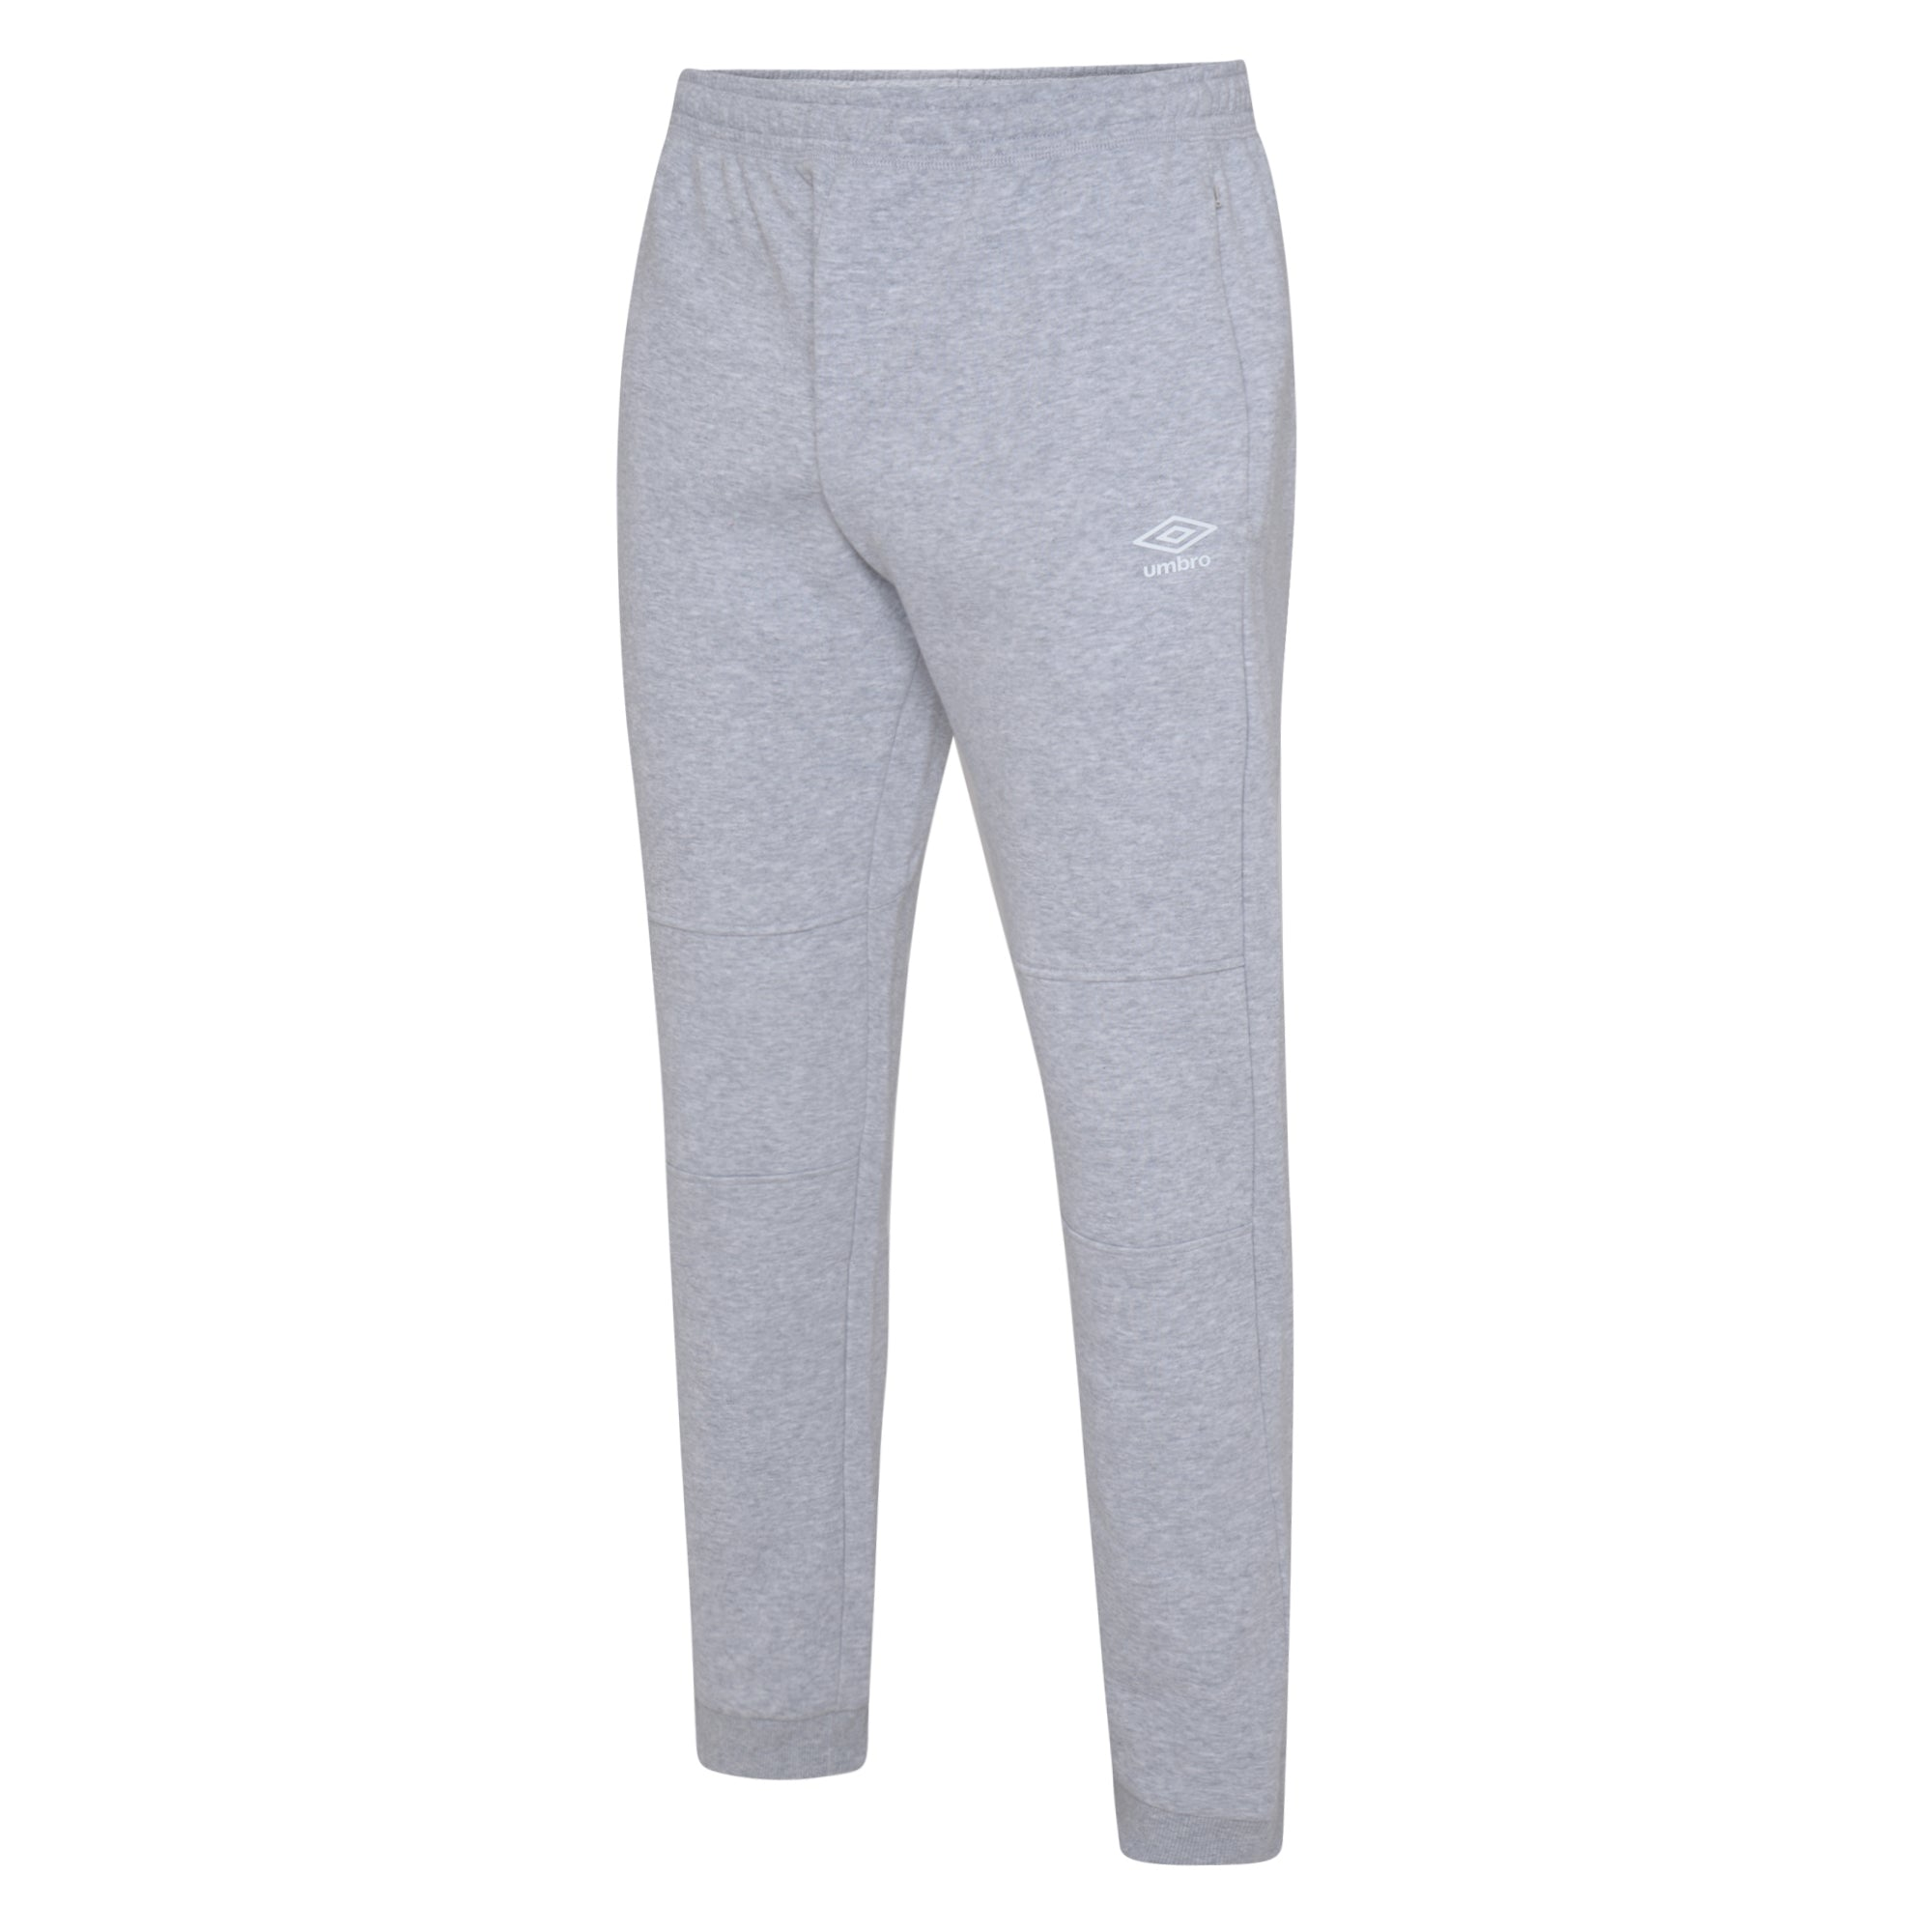 Umbro Club Leisure Jogpants - Grey Marl/White